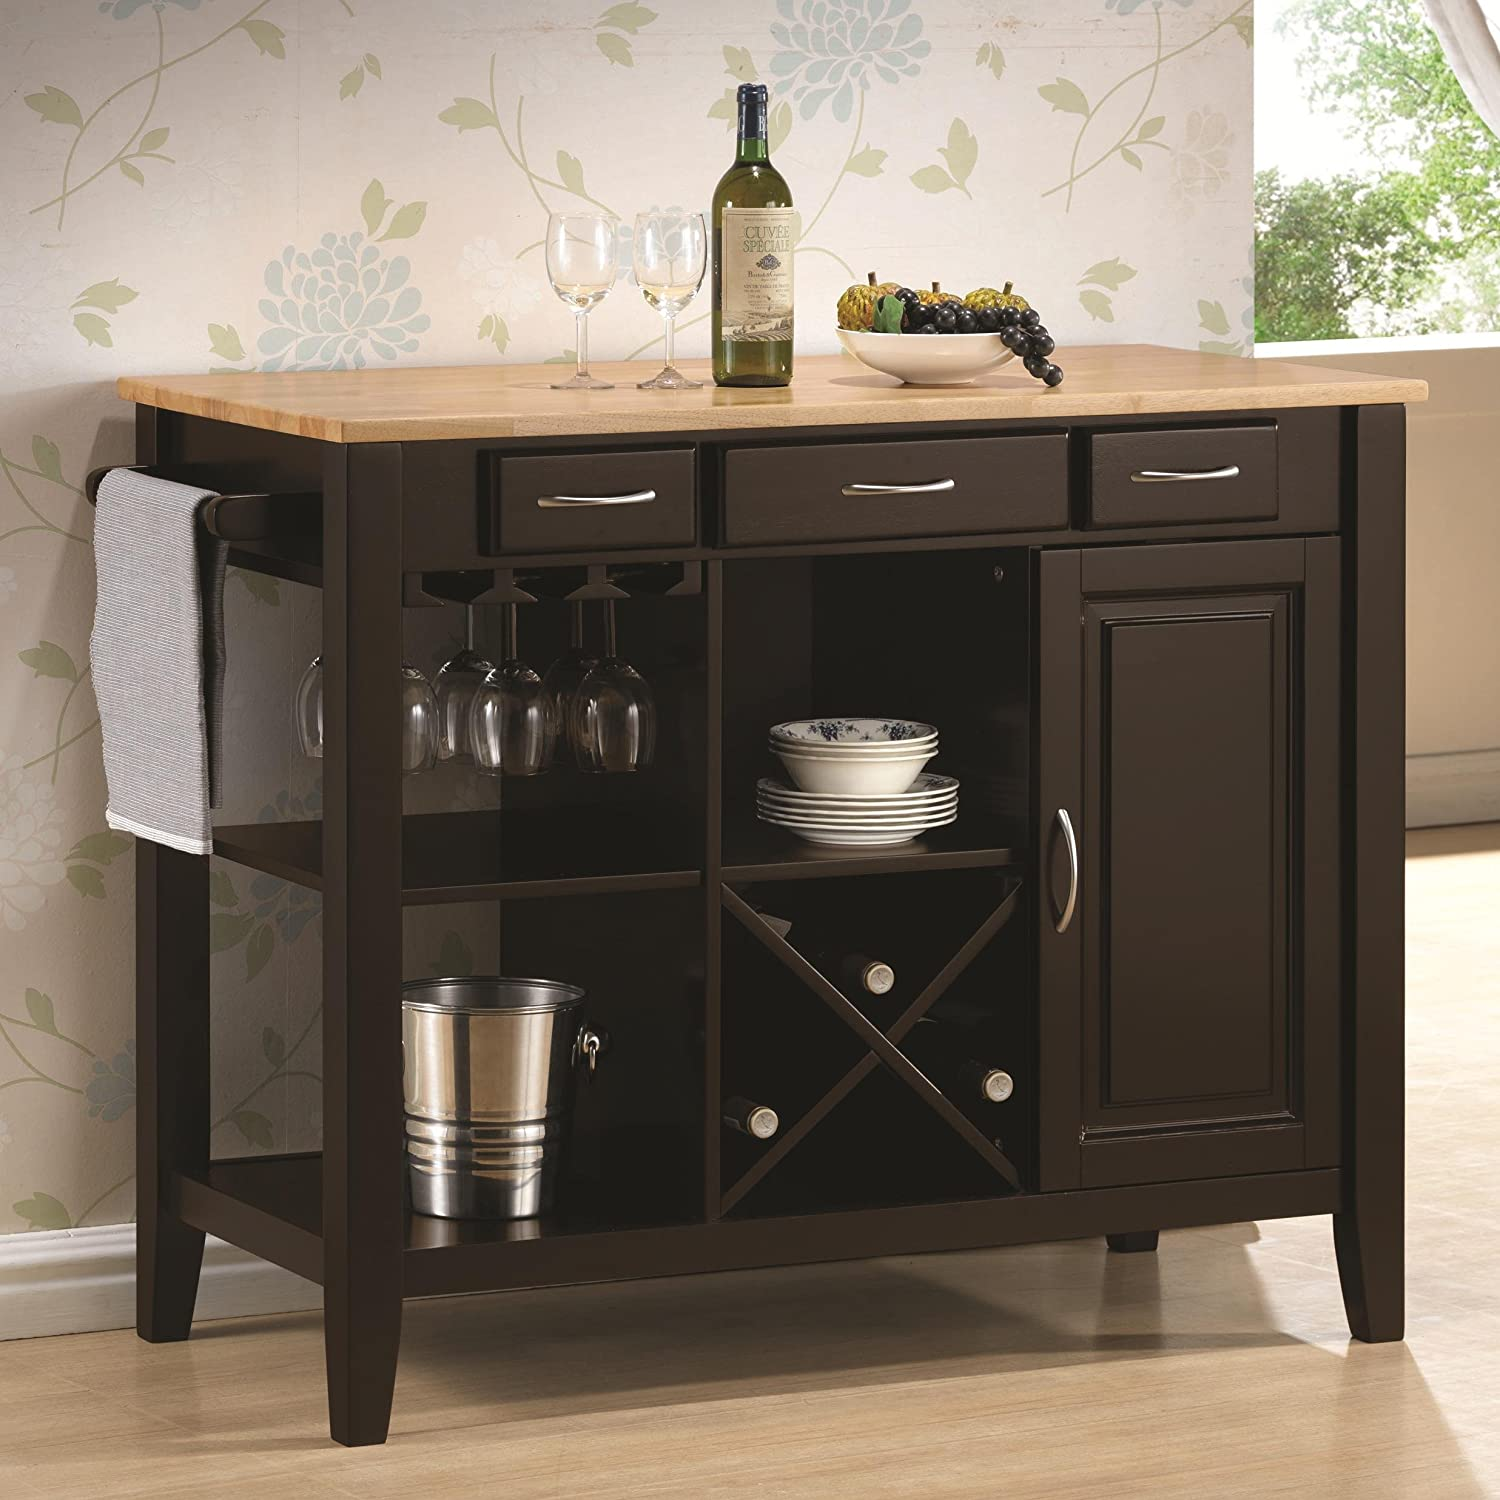 Amazon Coaster Kitchen Cart with Three Drawers